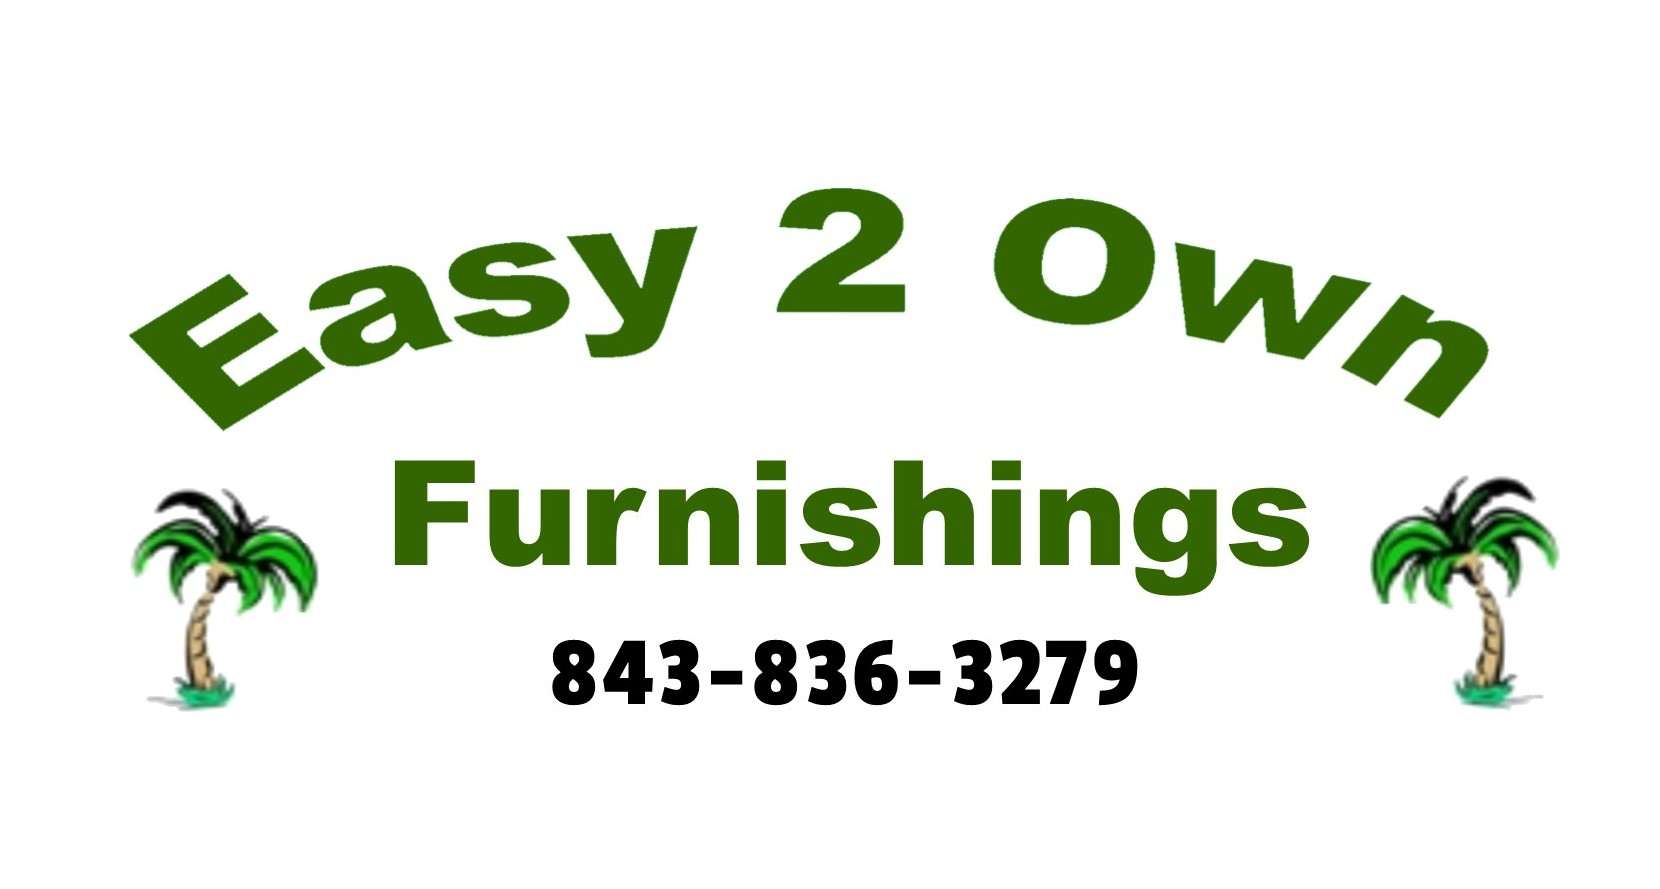 Easy 2 Own Furnishings 843.836.3279 Mobile Logo